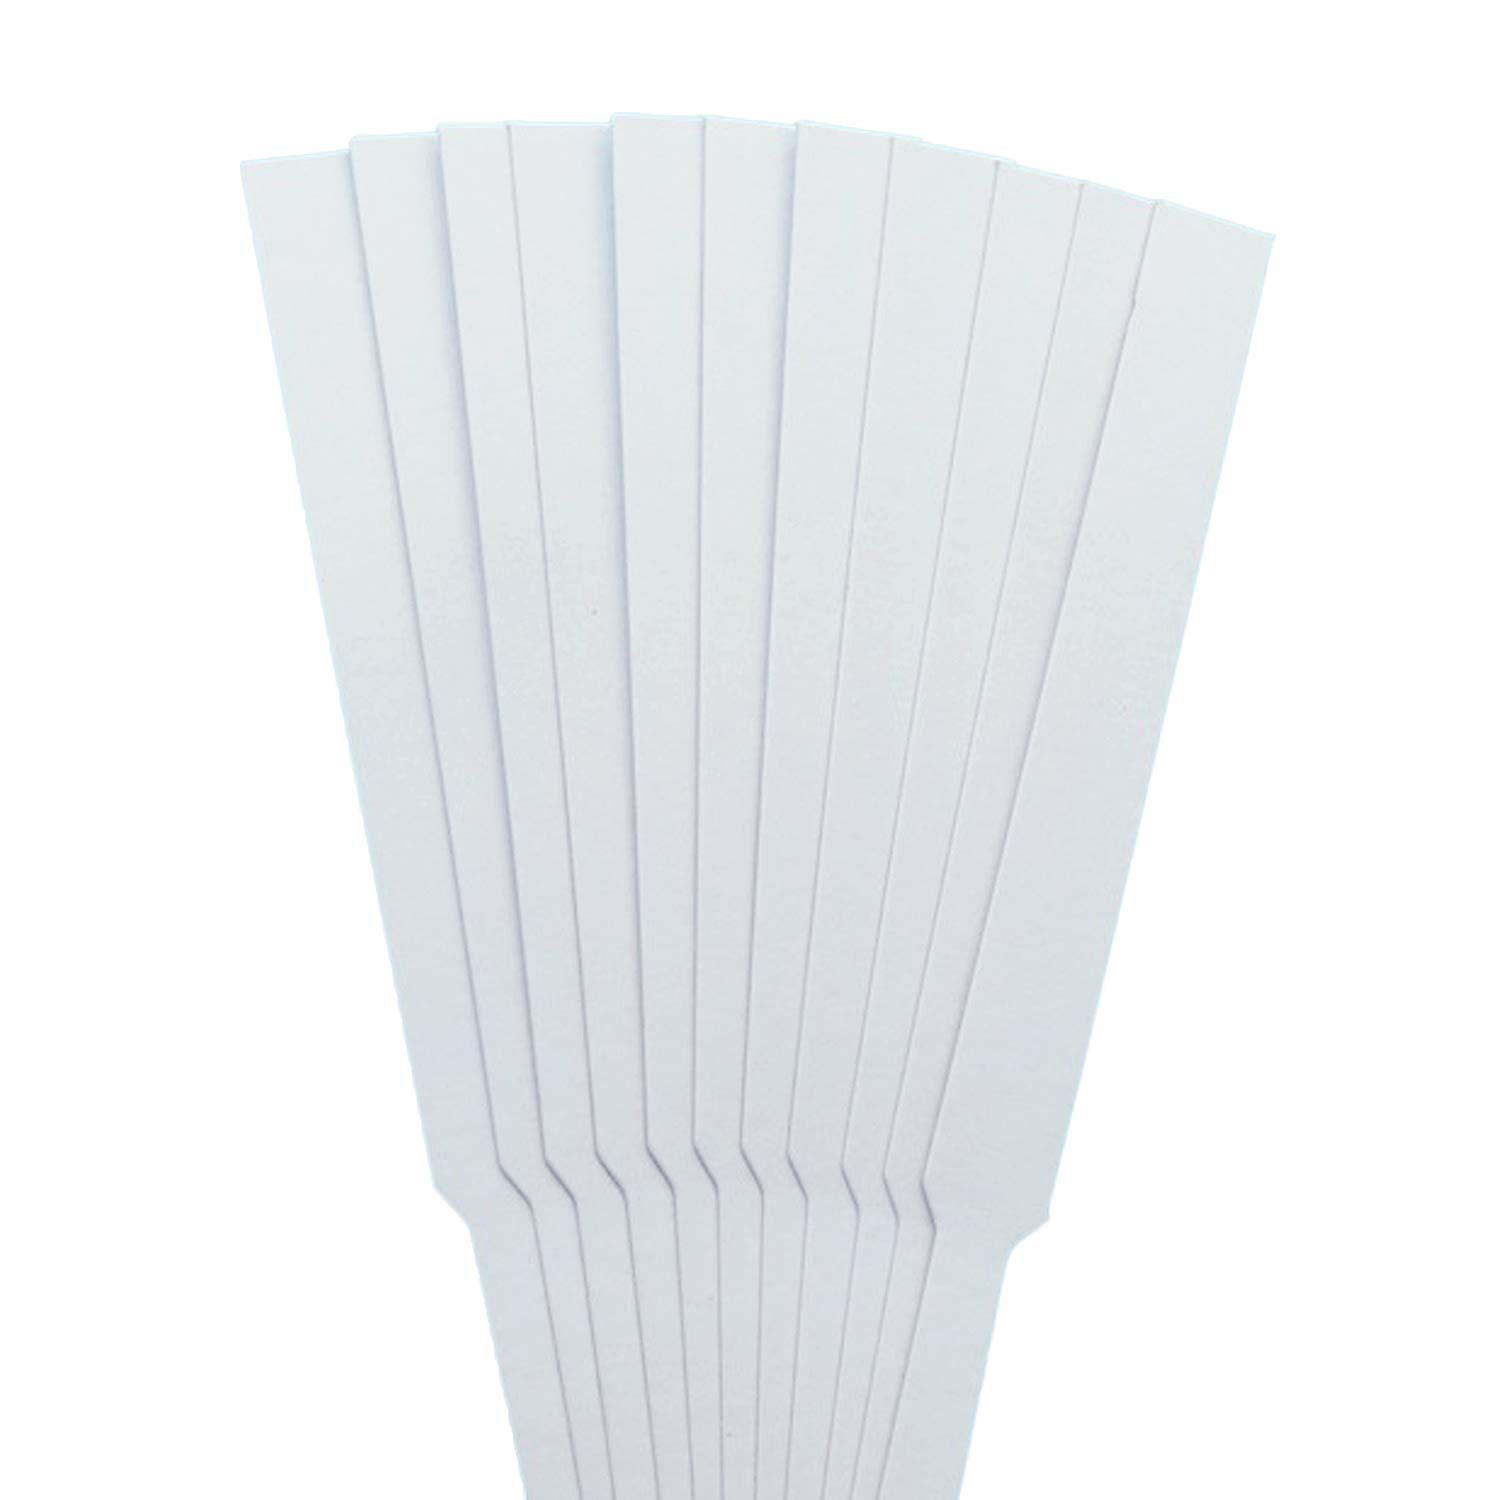 100pcs 130 x 12 mm Perfume Test Paper Strips for Testing Fragrance Aromatherapy Essential Oils Vococal A